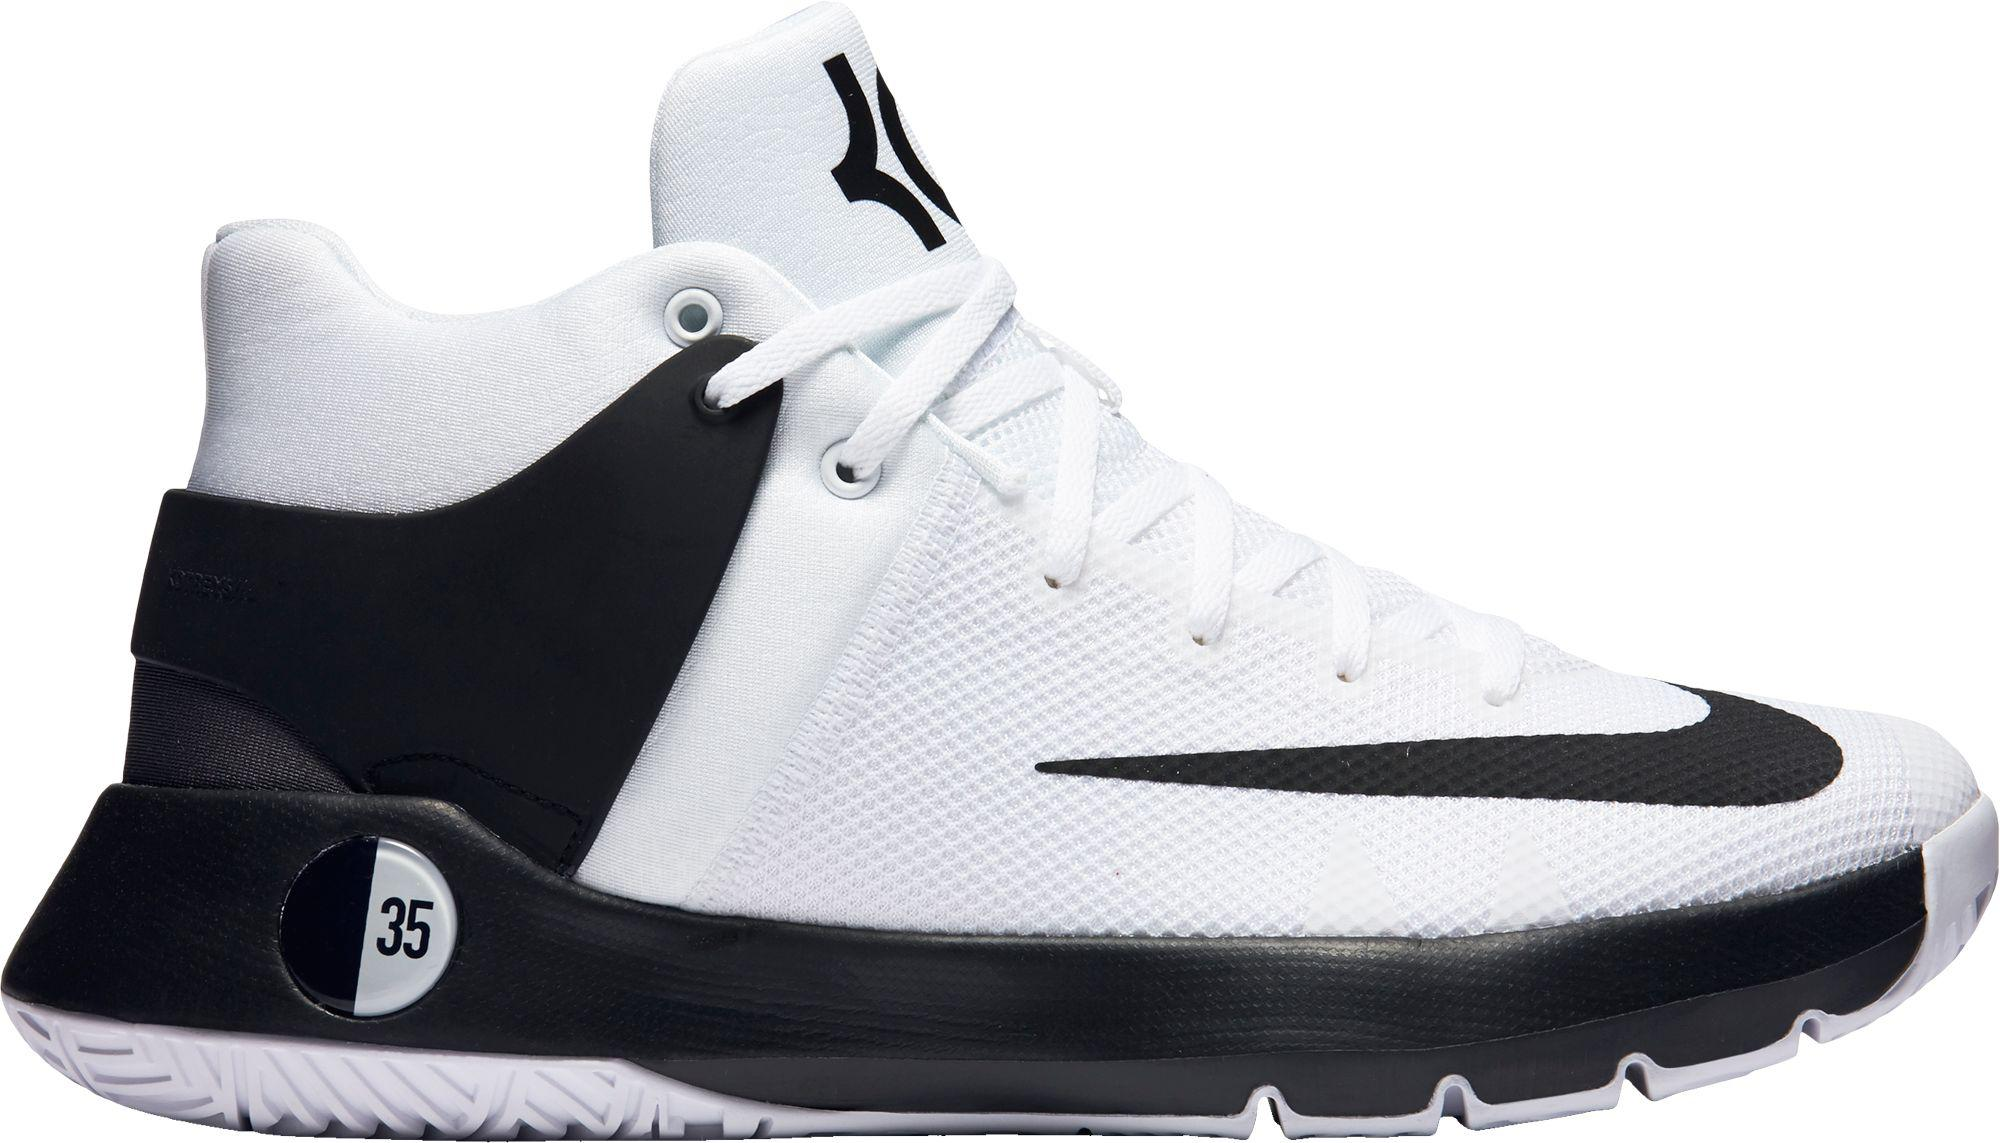 the best attitude 8f83c 3a6a4 Nike - White Kd Trey 5 Iv Tb Basketball Shoes for Men - Lyst